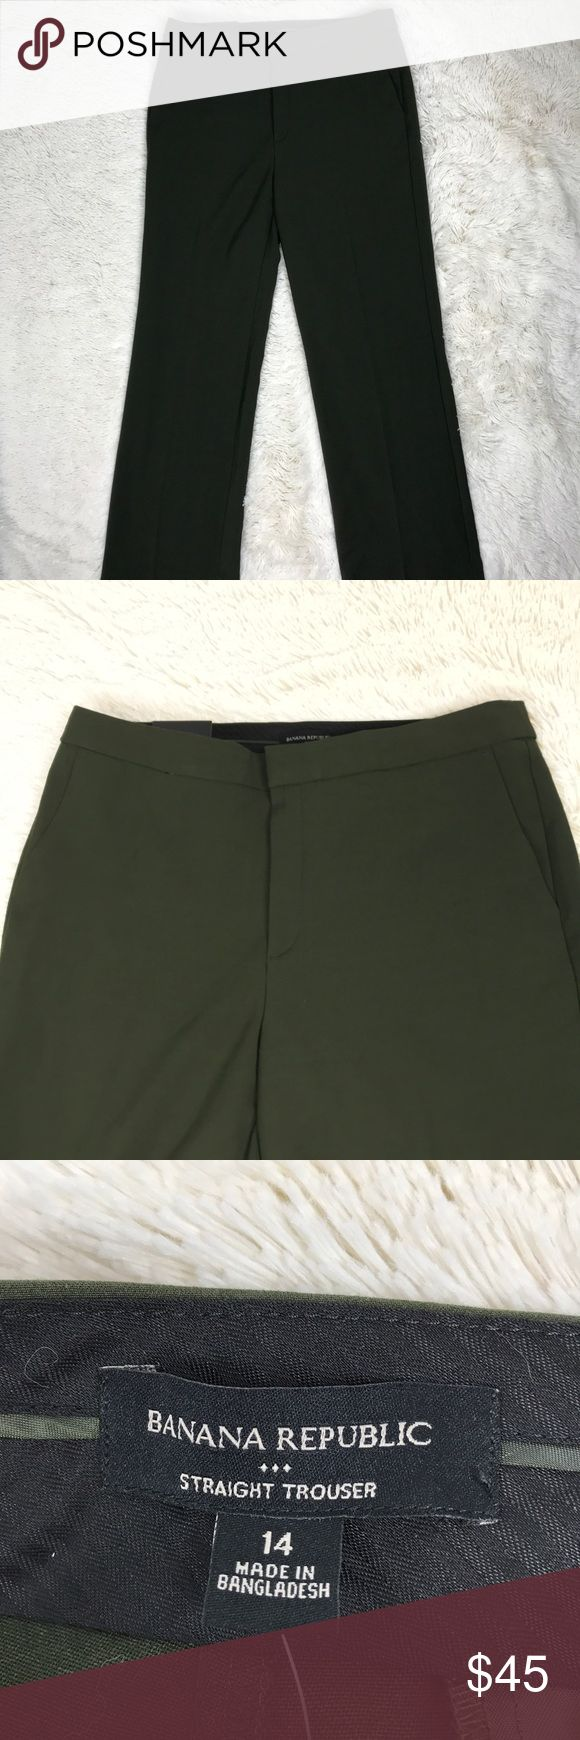 """NWT Banana Republic Straight Trouser Pants NWT women's size 14 dark green Banana Republic stretch, straight leg trouser pants. 79% polyester, 15% viscose, 6% spandex.   Measurements (flat lay): Waist – 18"""" Hips – 21"""" Length – 44 1/2"""" Inseam – 32 1/2""""  Comes from a smoke free home!   New With Tags! No rips, tears, holes or stains. Banana Republic Pants Straight Leg"""